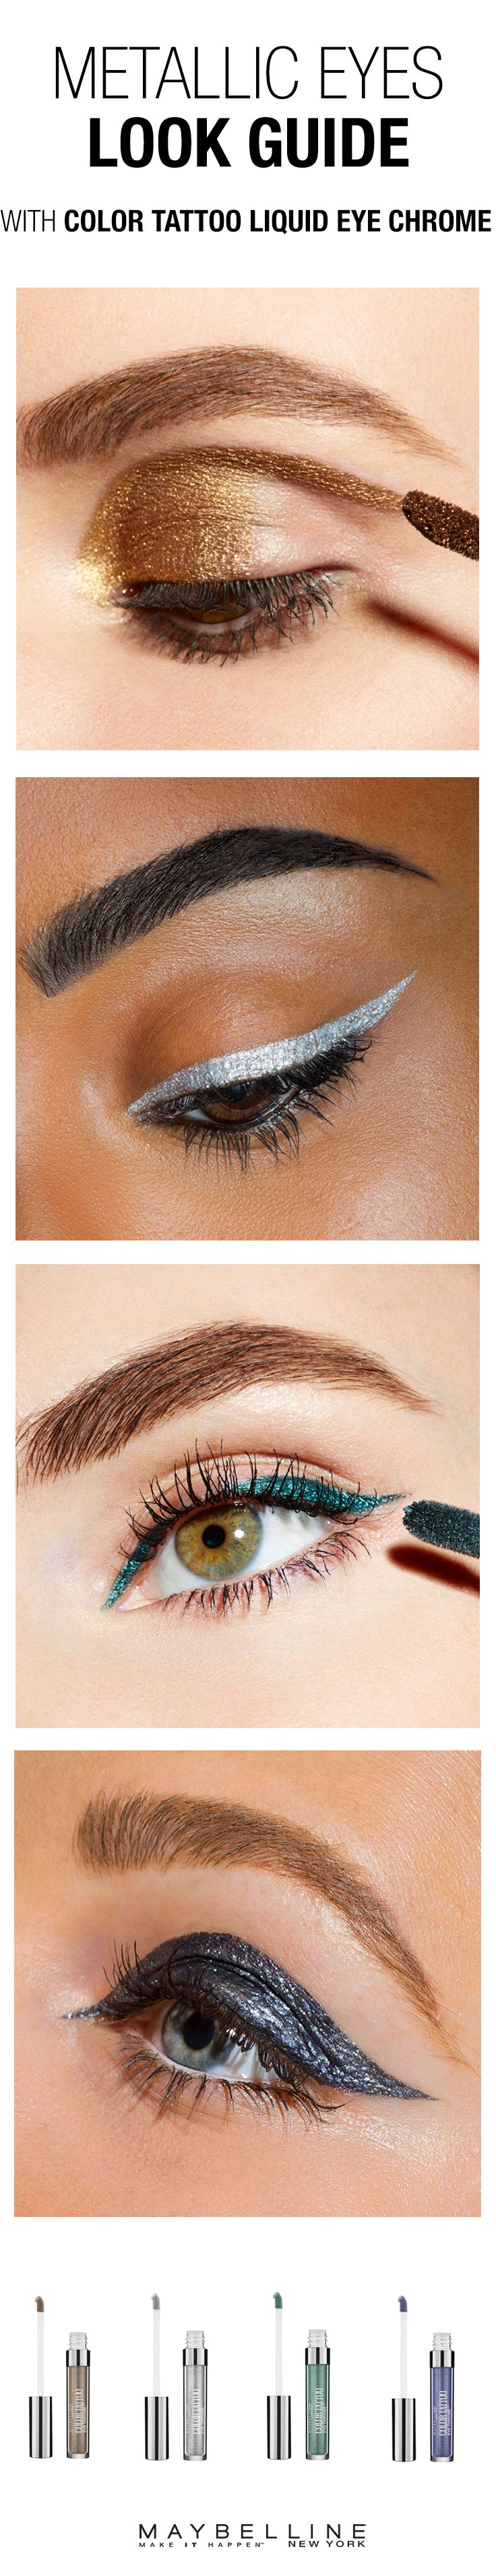 17 best images about eye of the tiger on pinterest gold for Color tattoo eye chrome